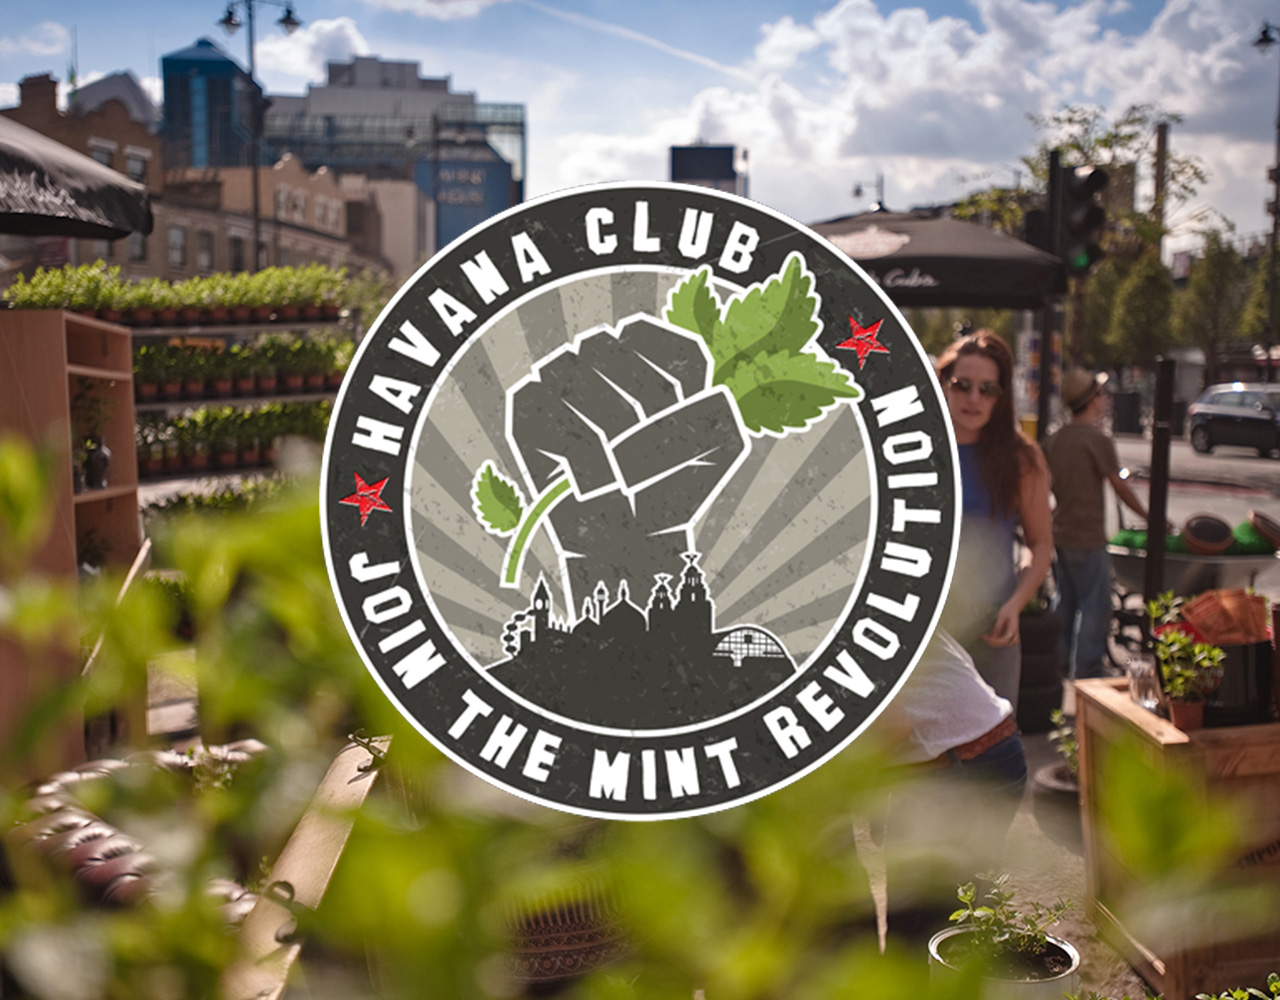 Havana Club Mint Revolution